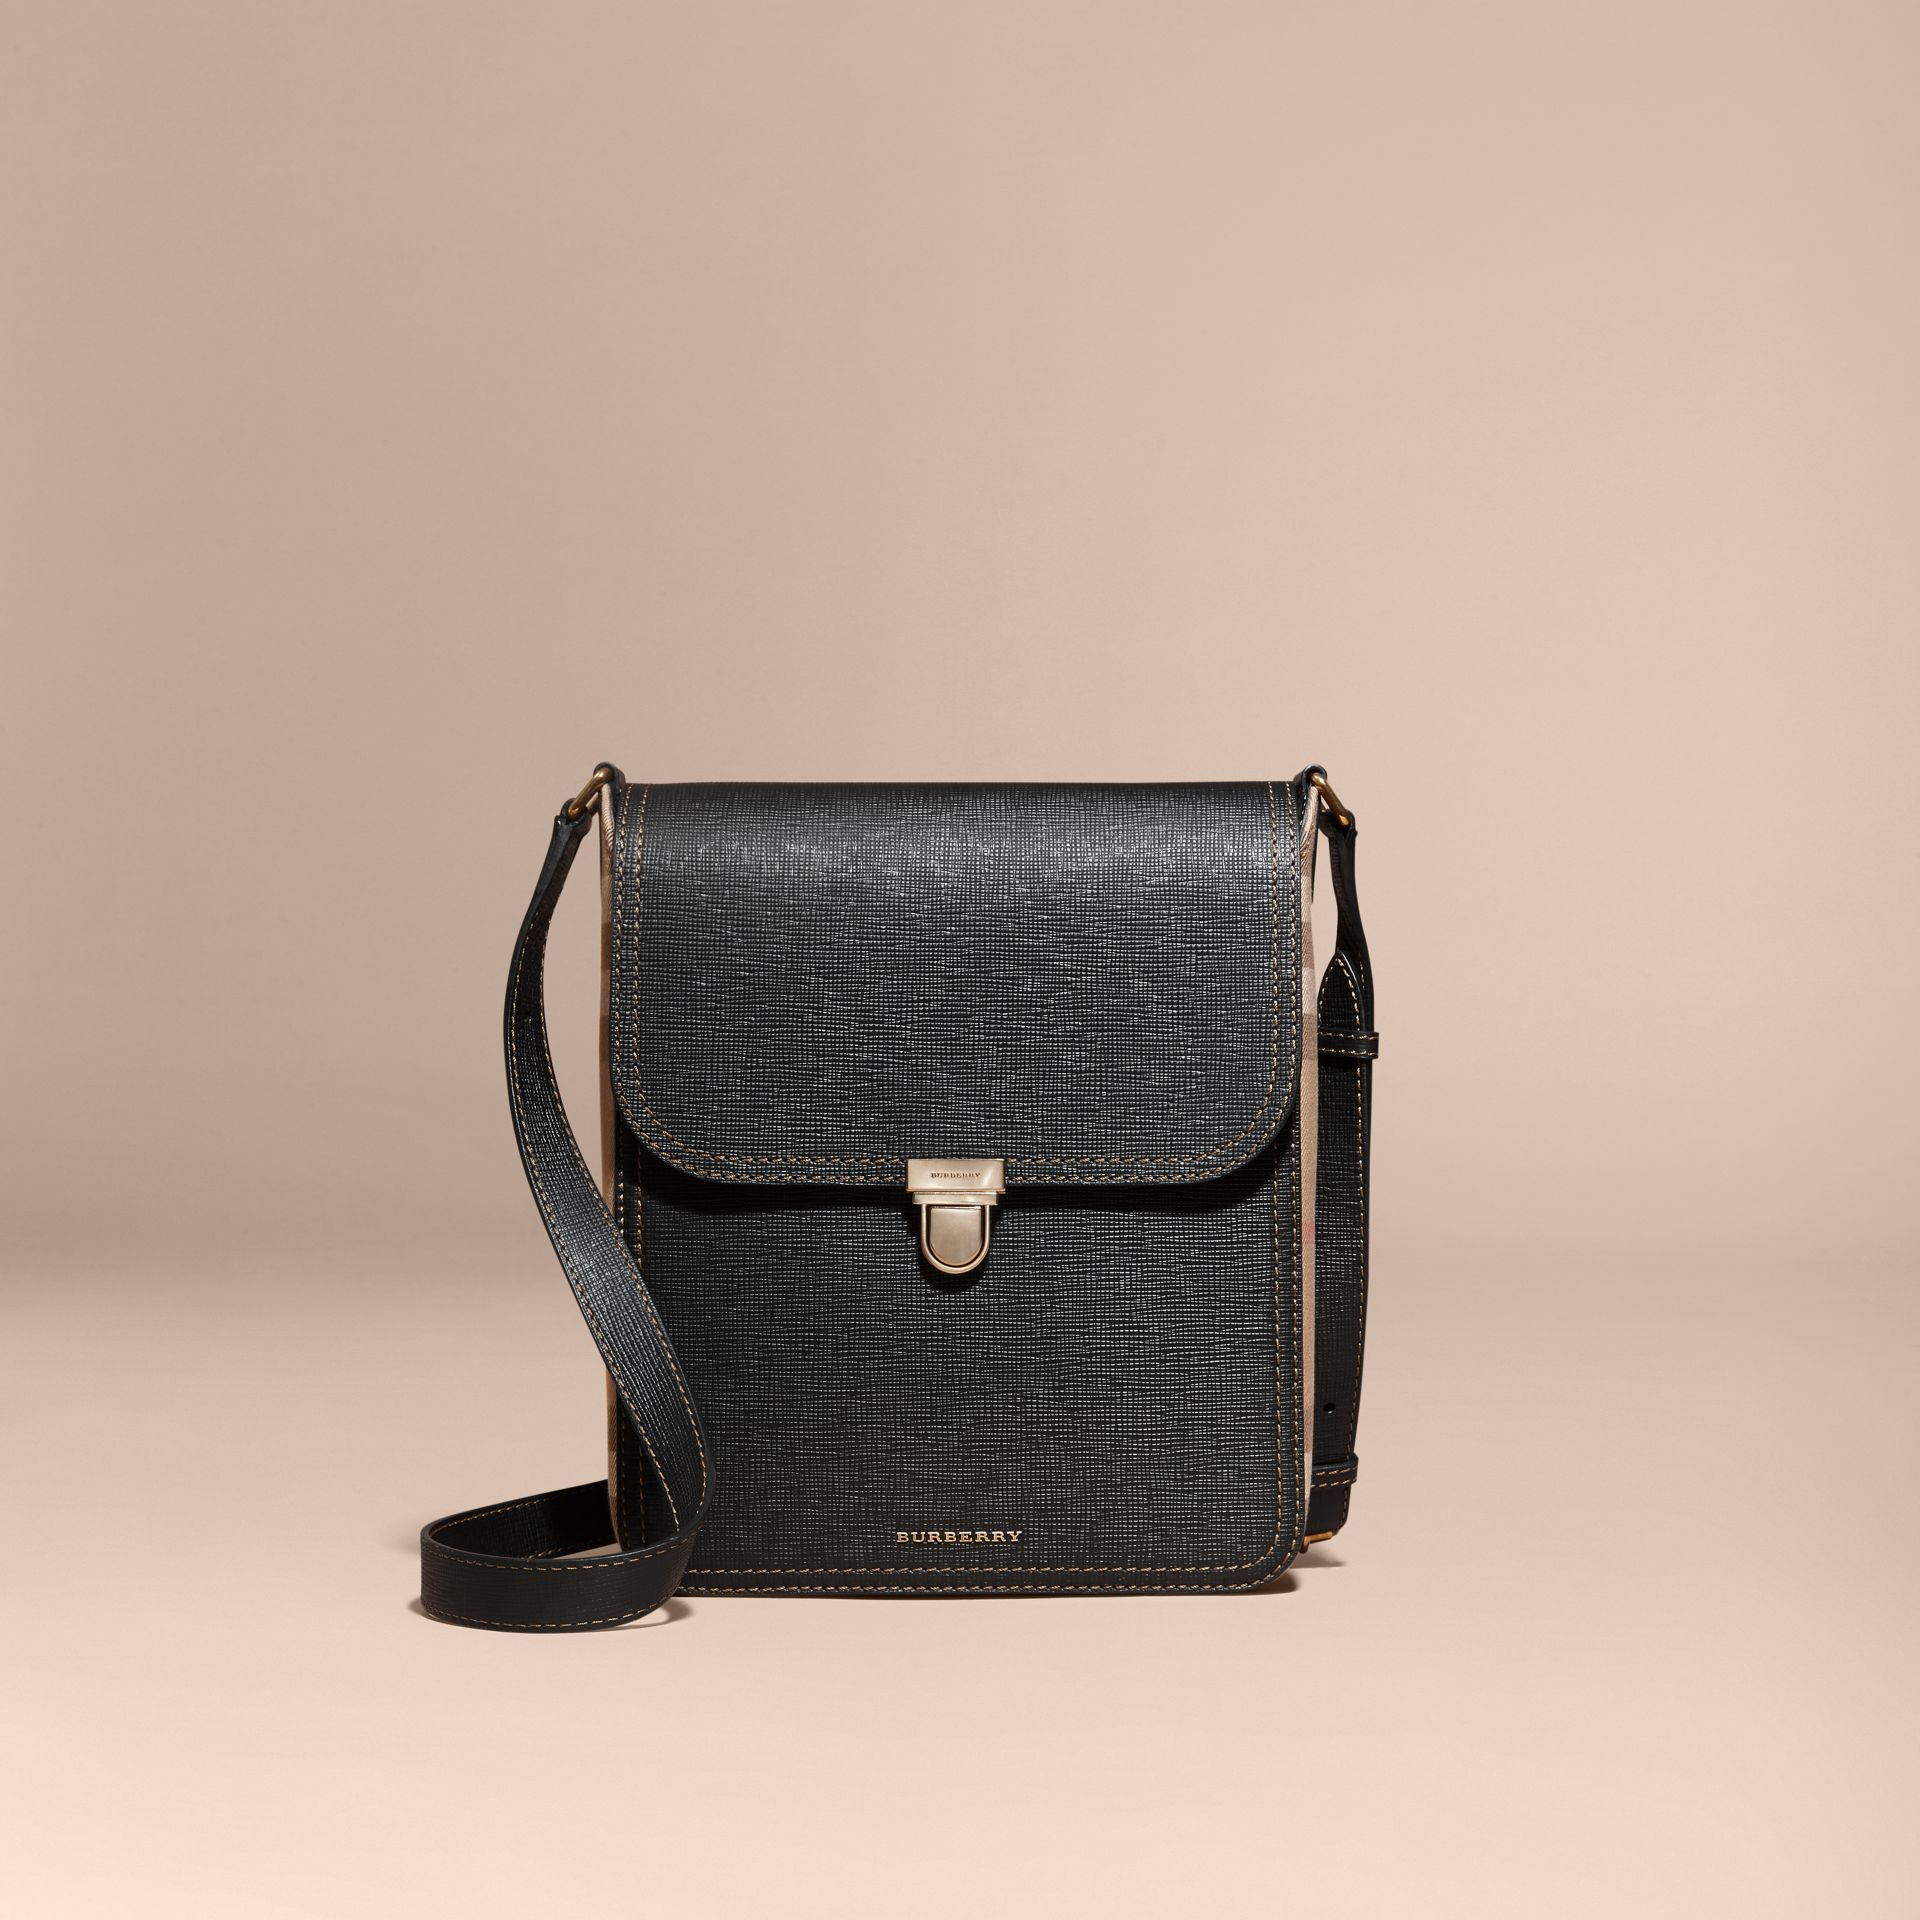 Noir Sac cartable medium The Satchel en cuir texturé avec motif House check - photo de la galerie 8